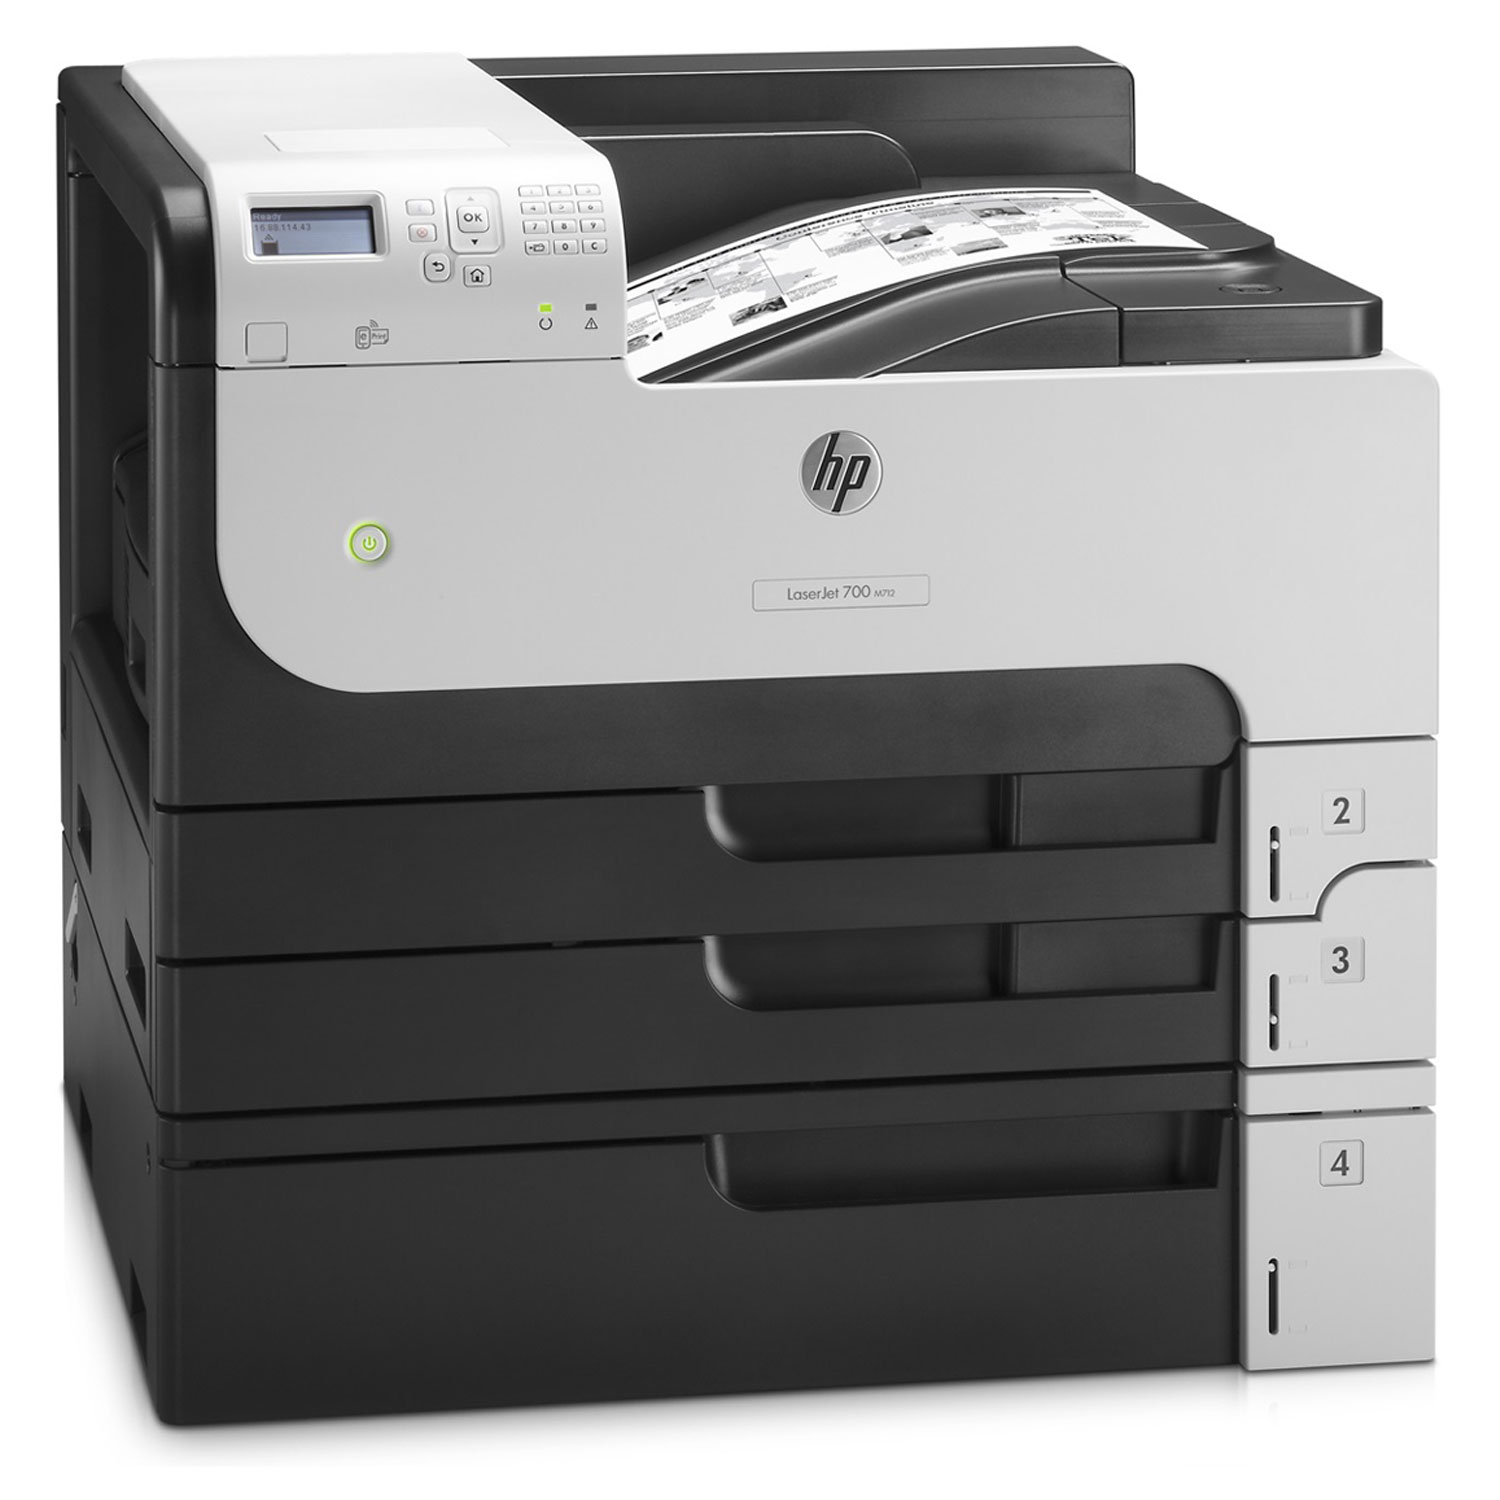 hp laserjet enterprise 700 m712xh imprimante laser hp sur. Black Bedroom Furniture Sets. Home Design Ideas